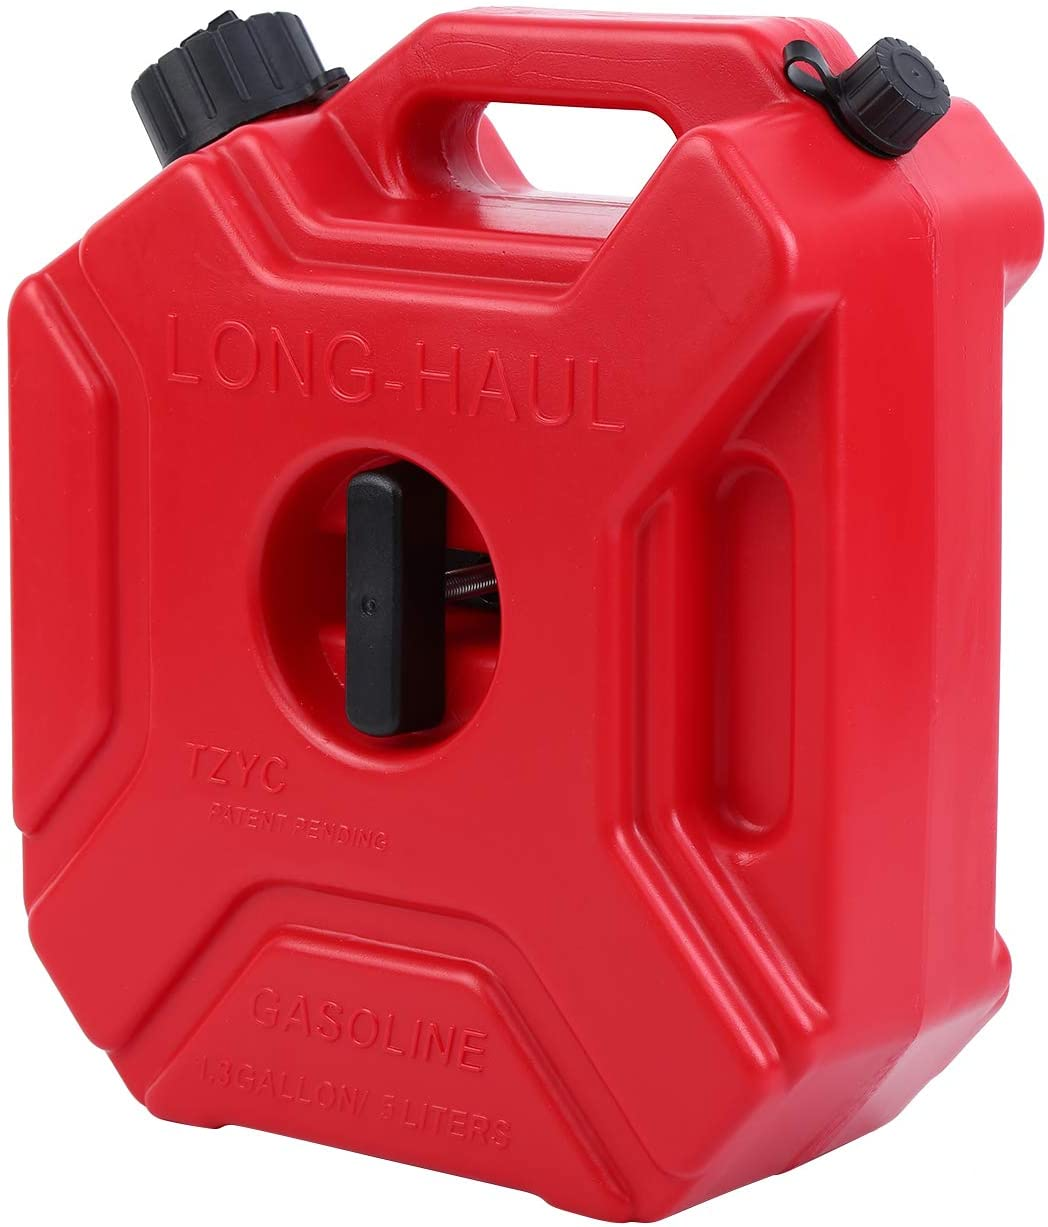 Samger 1.3 Gallon Gasoline Pack Fuel Container for Motorcycle Off Road ATV UTV Jeep